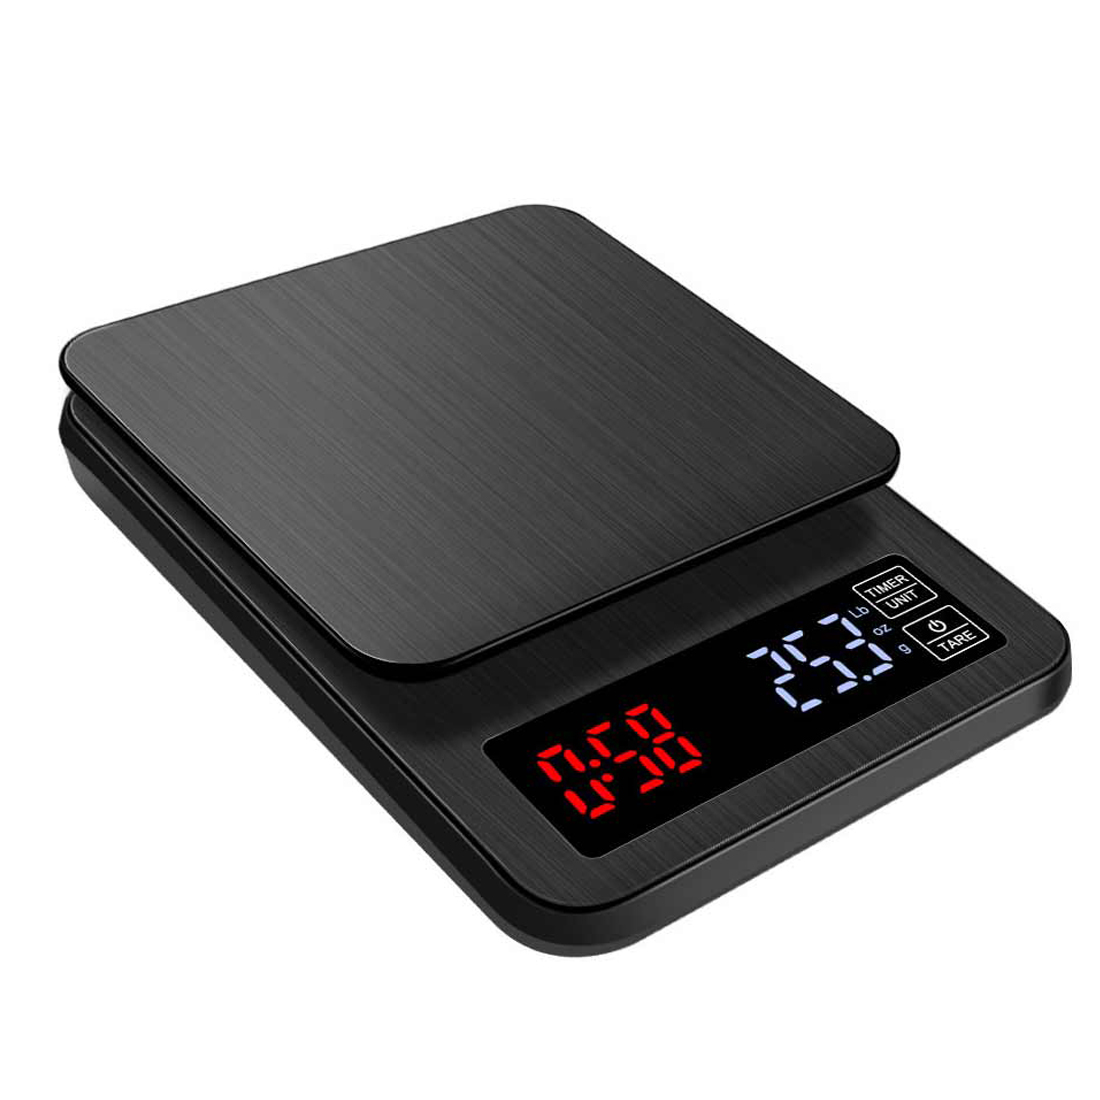 3/5/10kg 0.1g/0.01g LCD Electronic Kitchen Scales Household Balance Cooking Measure Tool Stainless Steel Digital Weighing Food